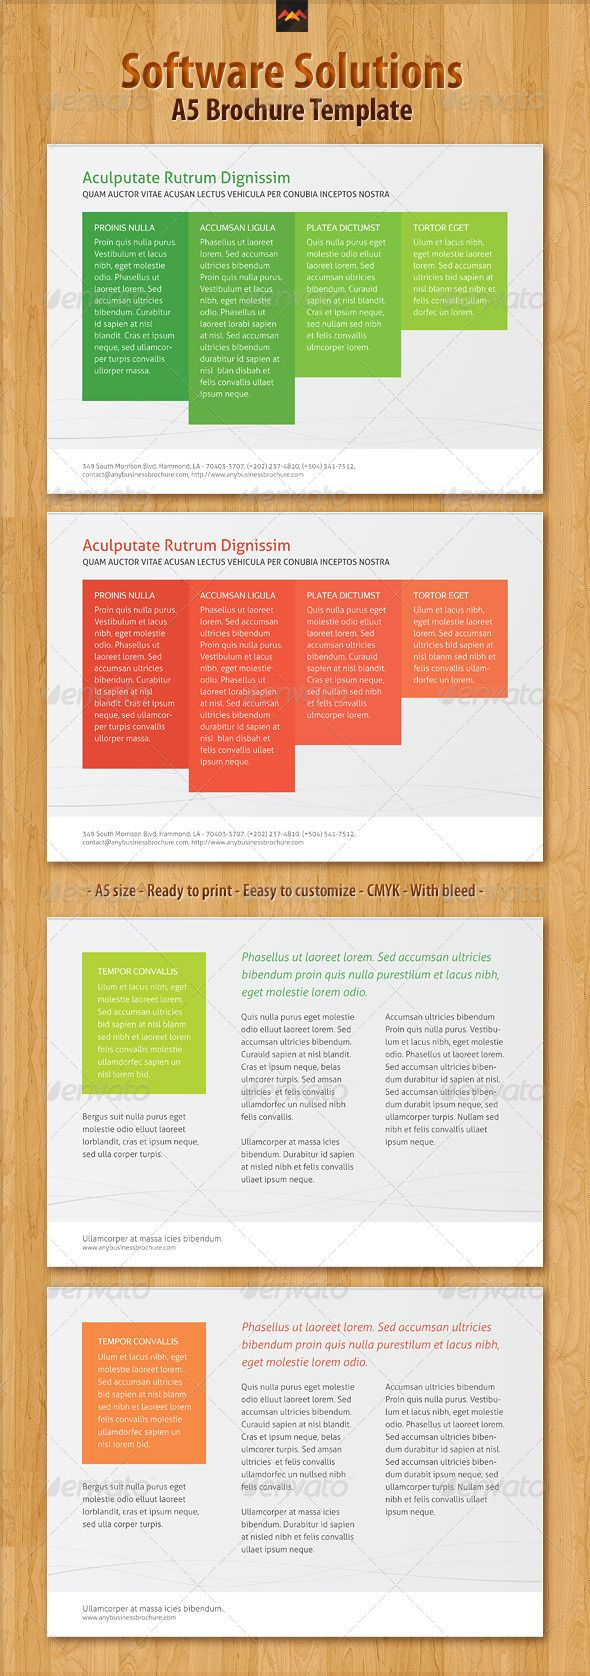 brochure templates for photoshop cs5 - 17 best images about print templates on pinterest the